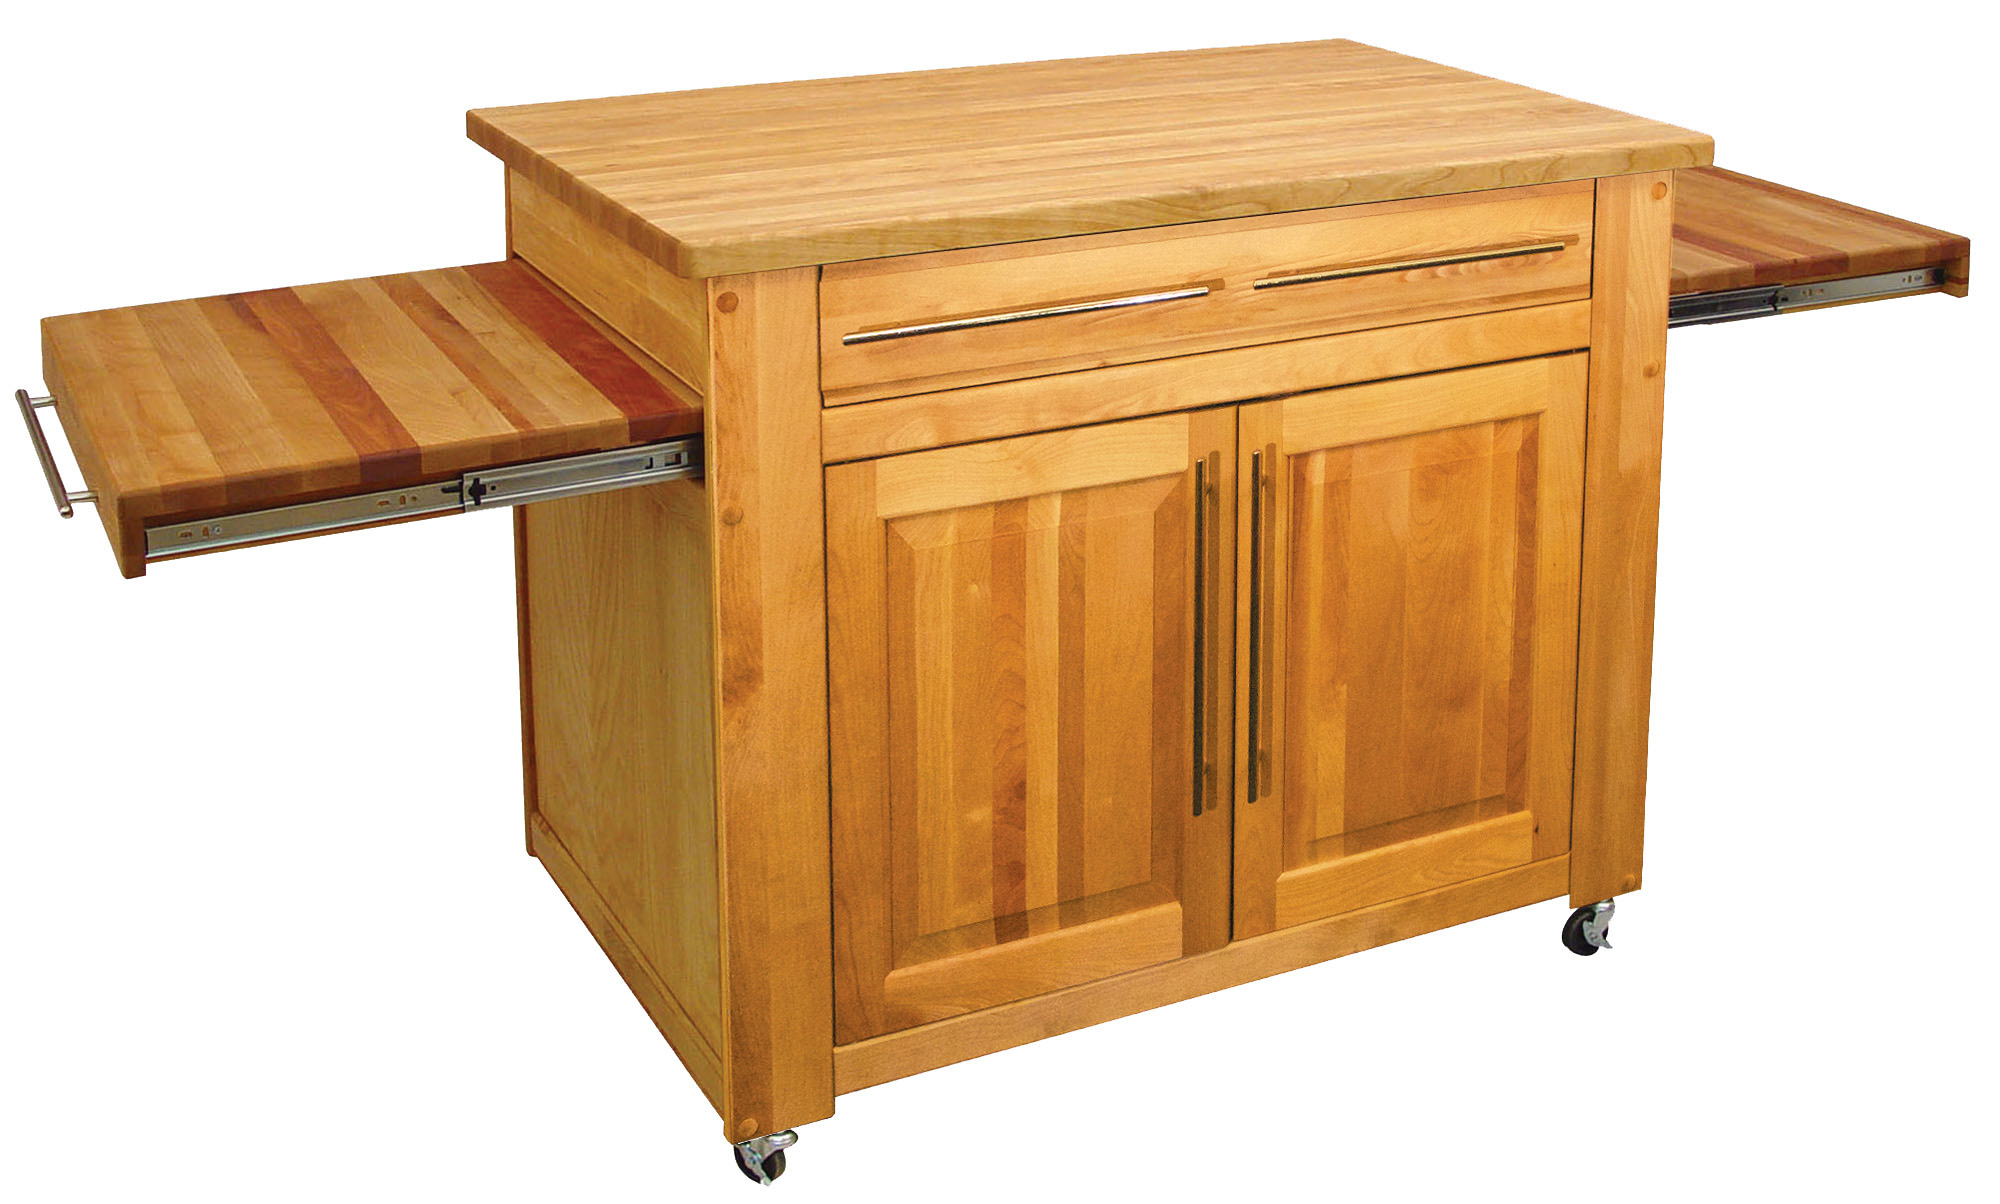 Kitchen Breakfast Nook Movable Kitchen Islands Rolling On Wheels Mobile